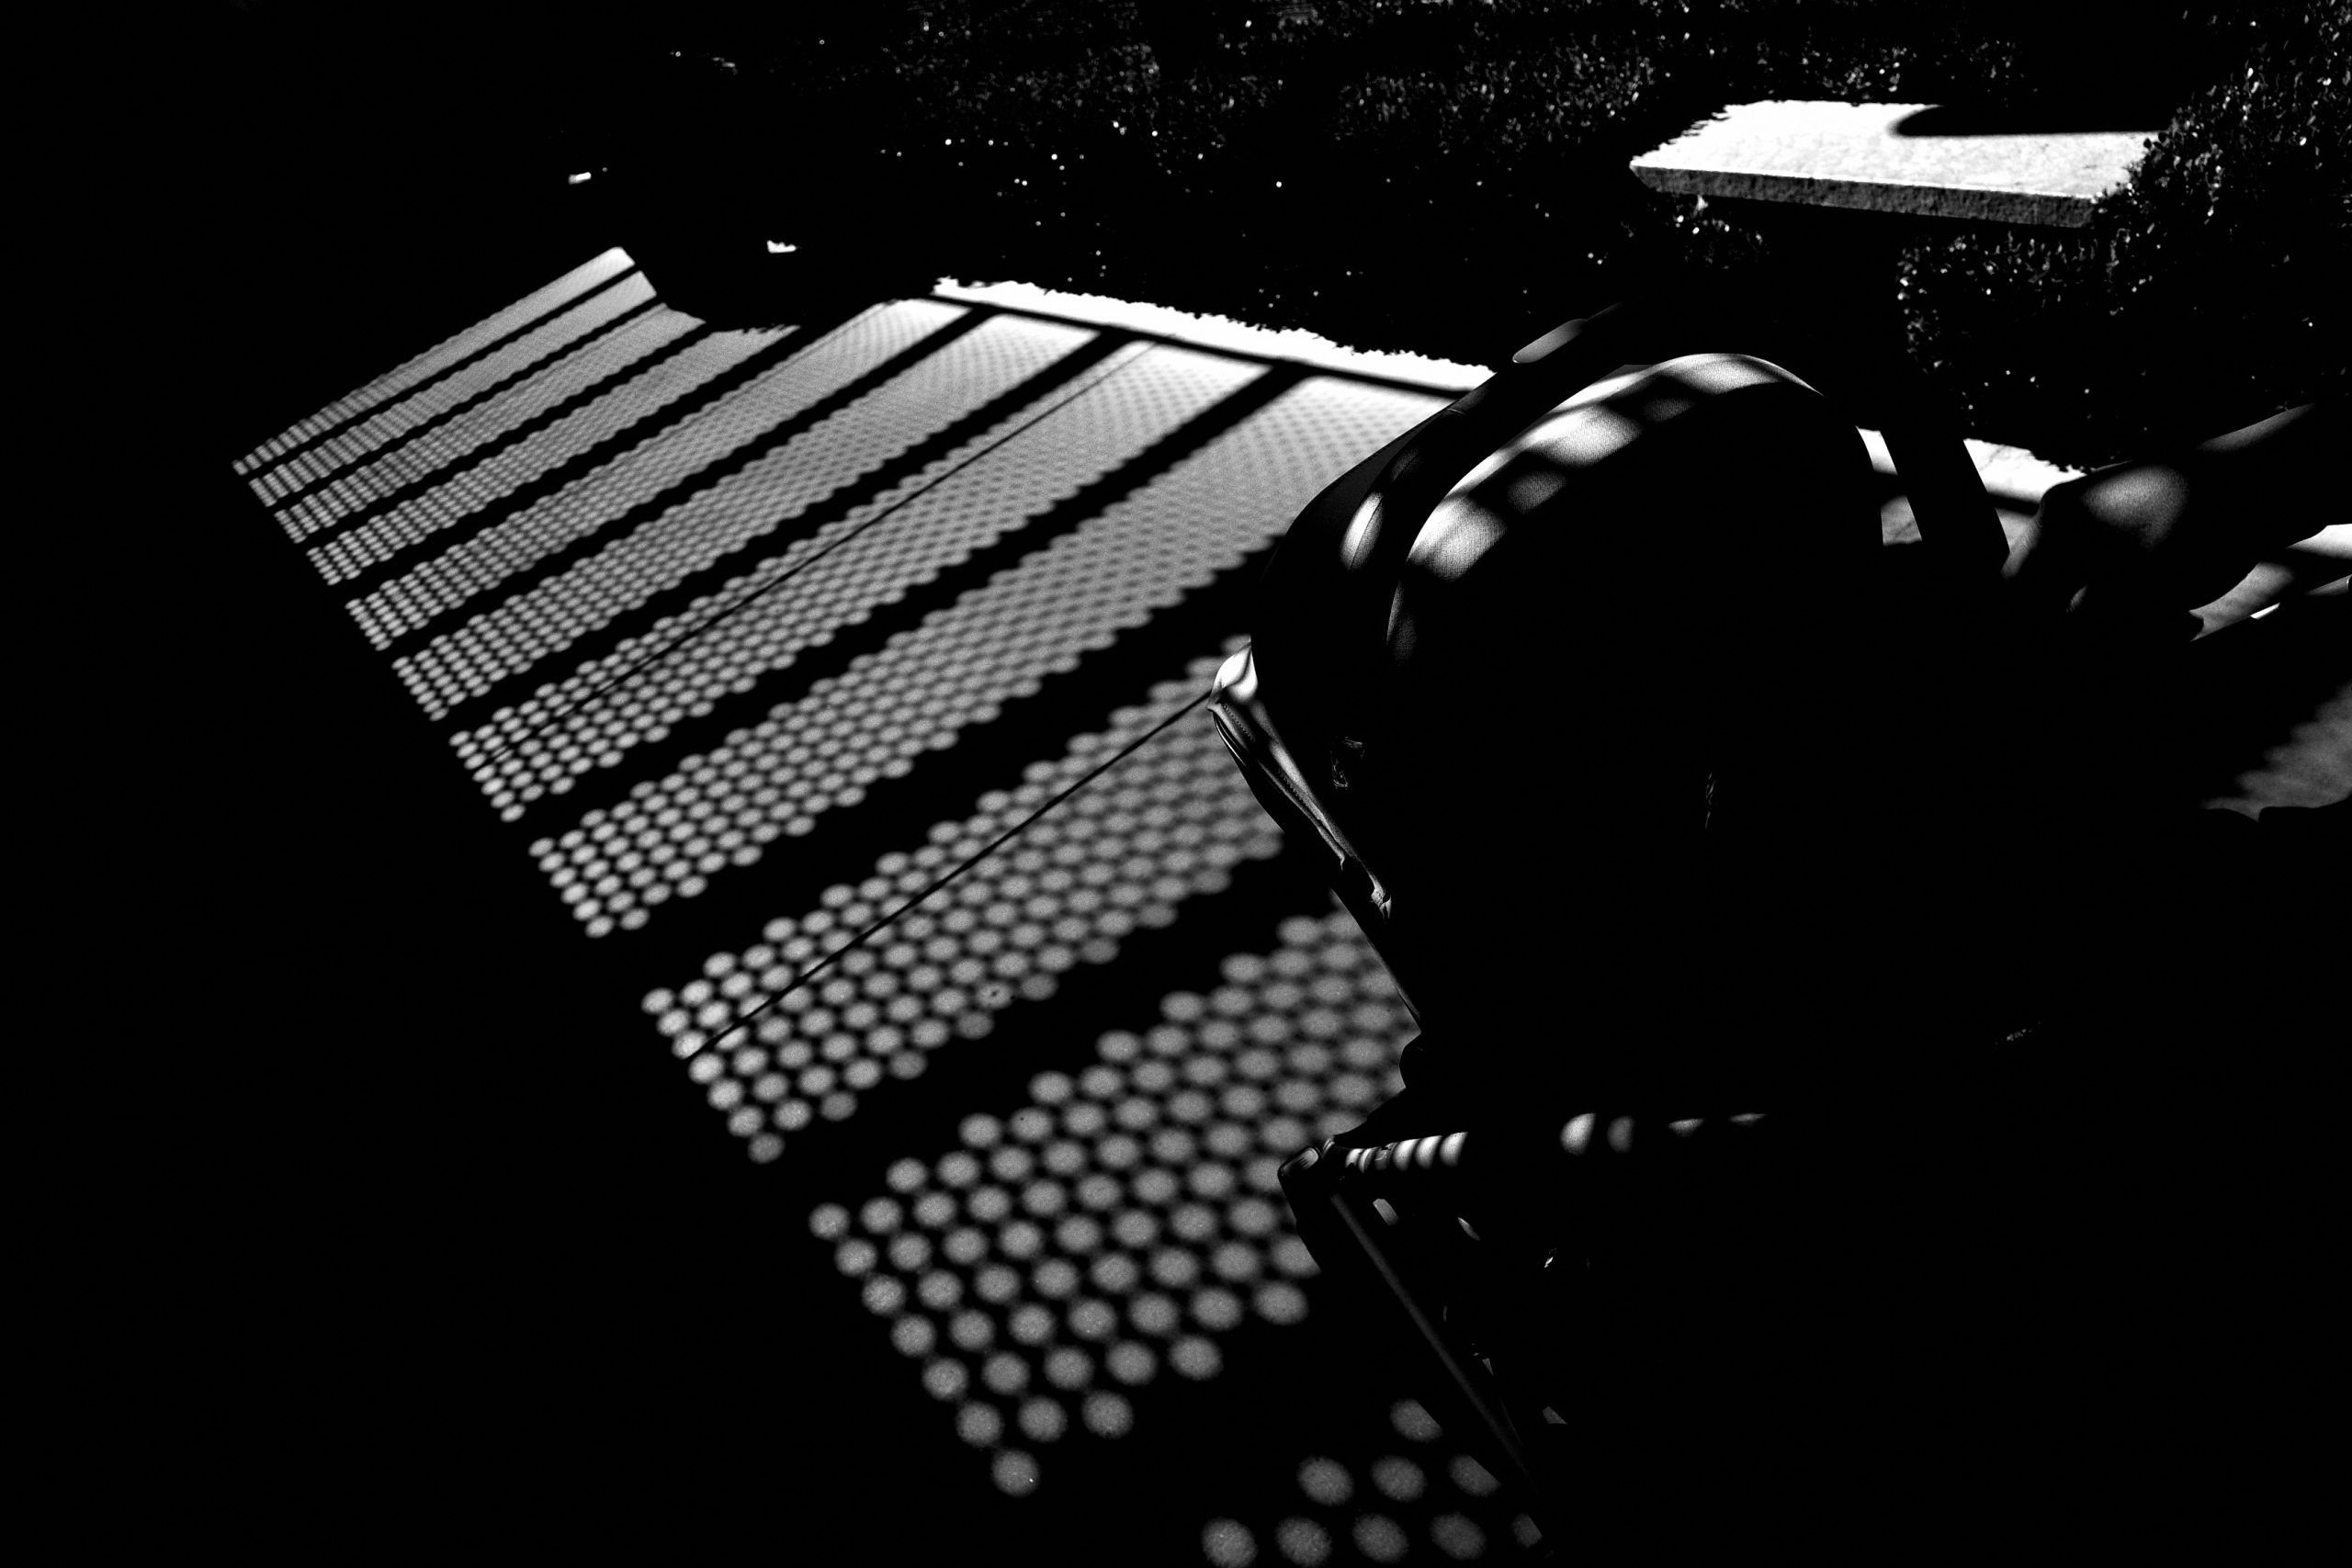 stroller abstract black and white